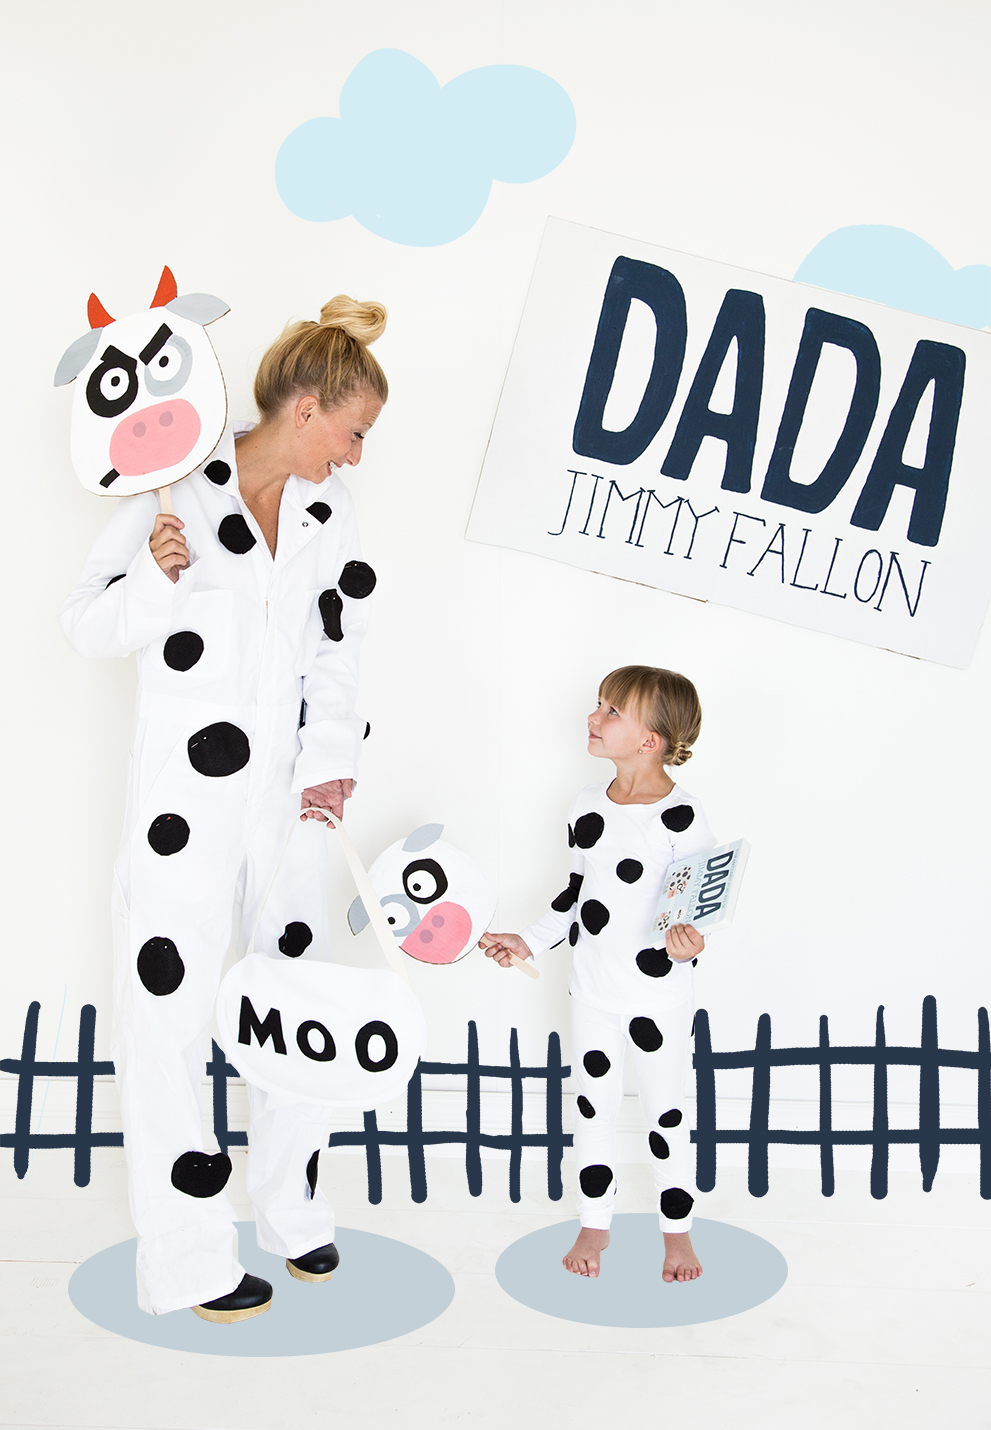 DADA-JIMMY-FALLON-COSTUMES-FOR-HALLOWEEN